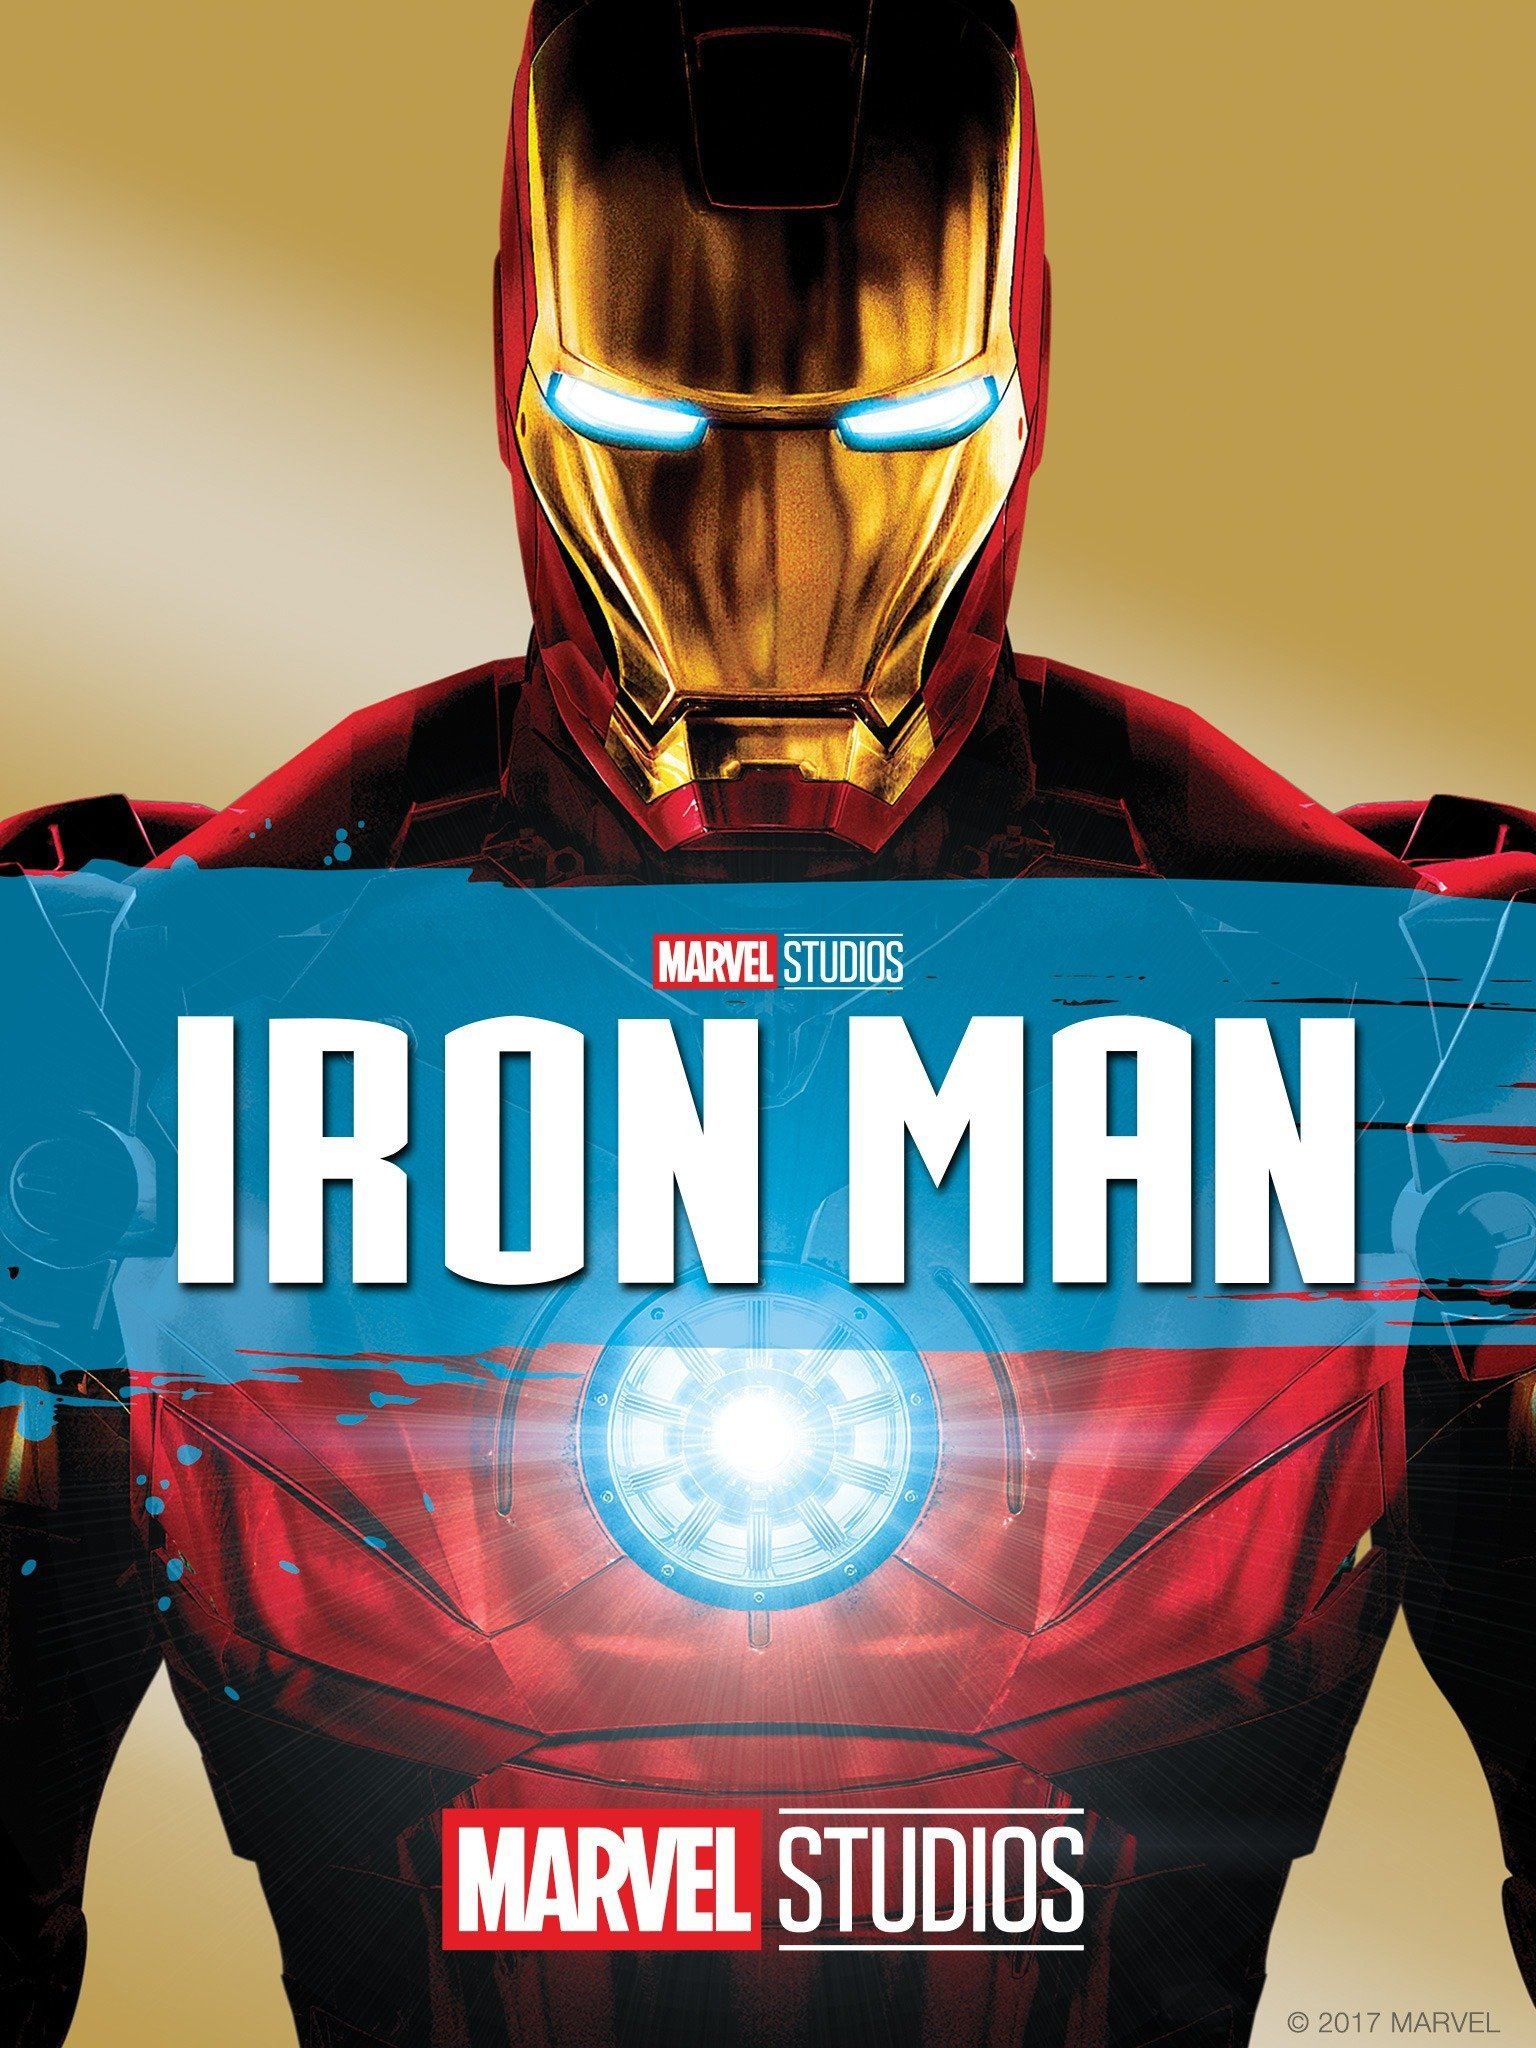 Iron Man (2008) - Rotten Tomatoes